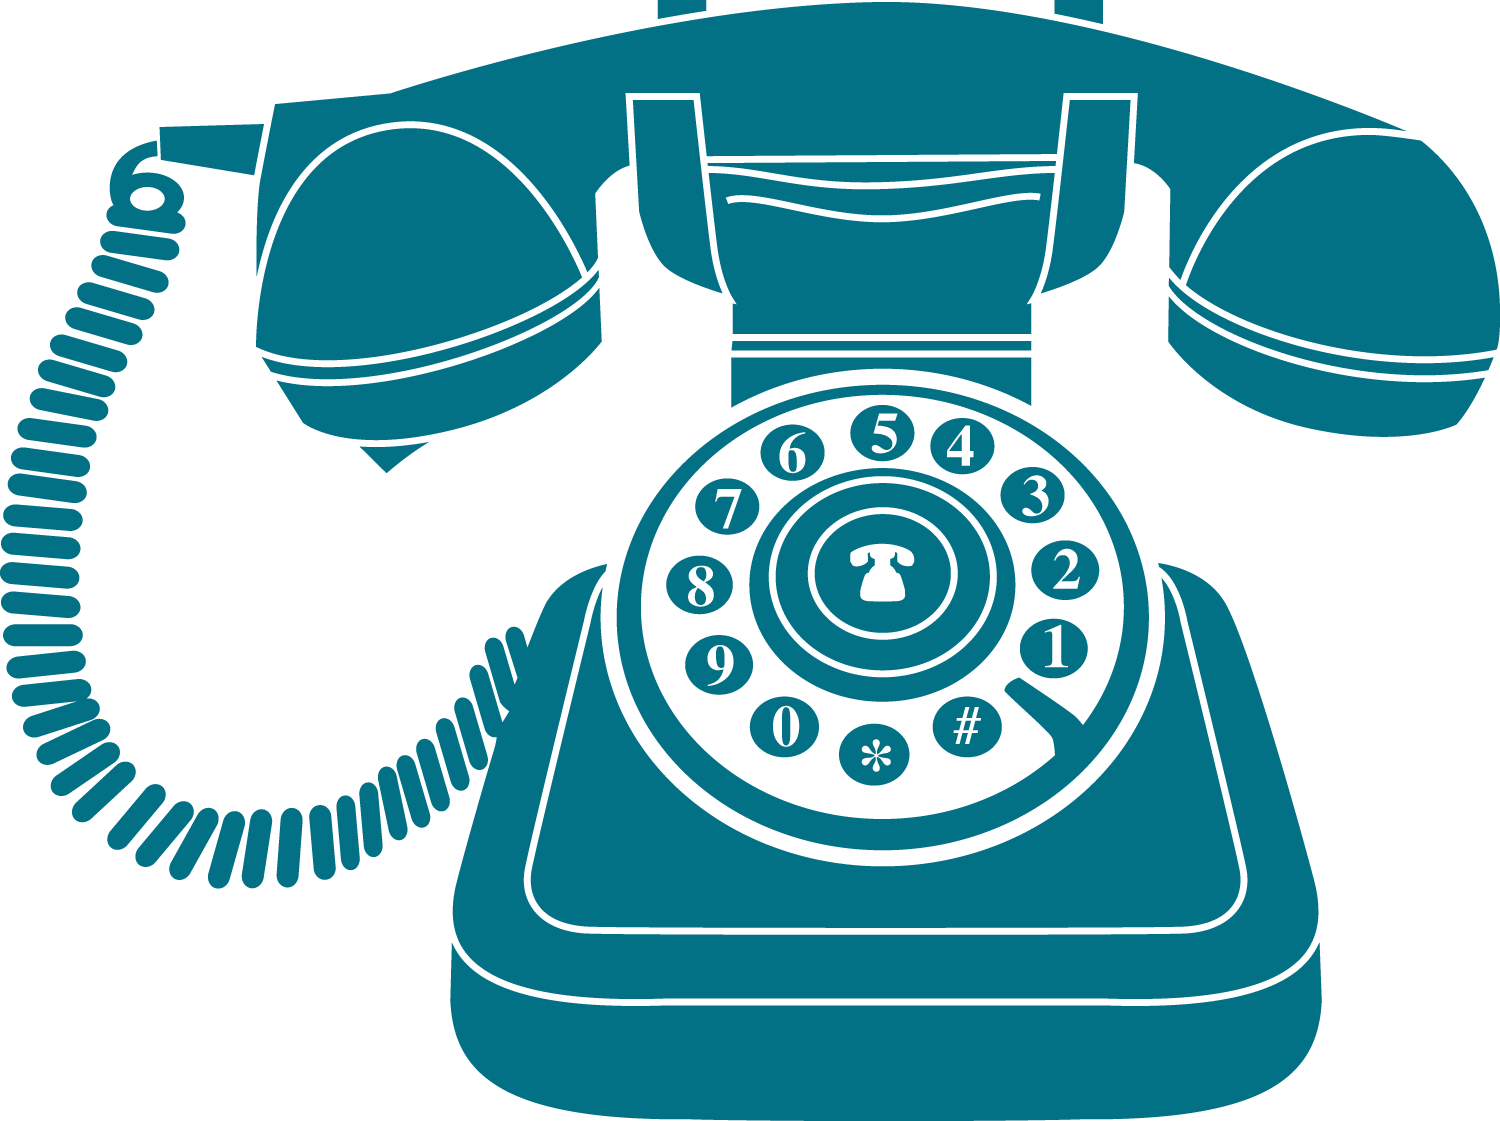 Phone clipart vintage phone. Blue icon transparent png